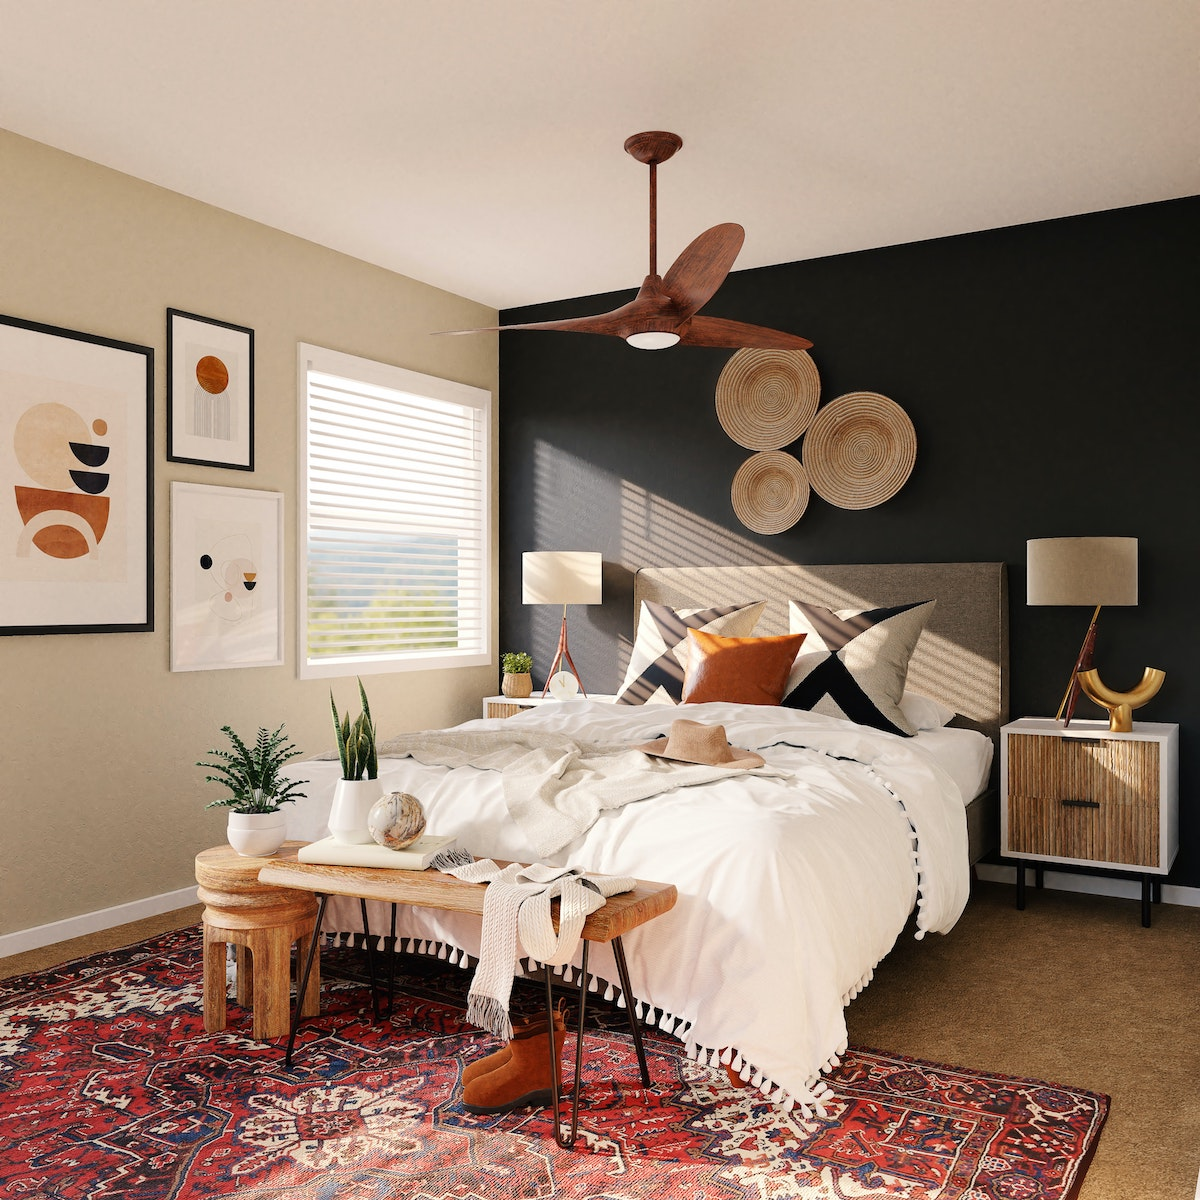 Queen Sized Bed in Gray